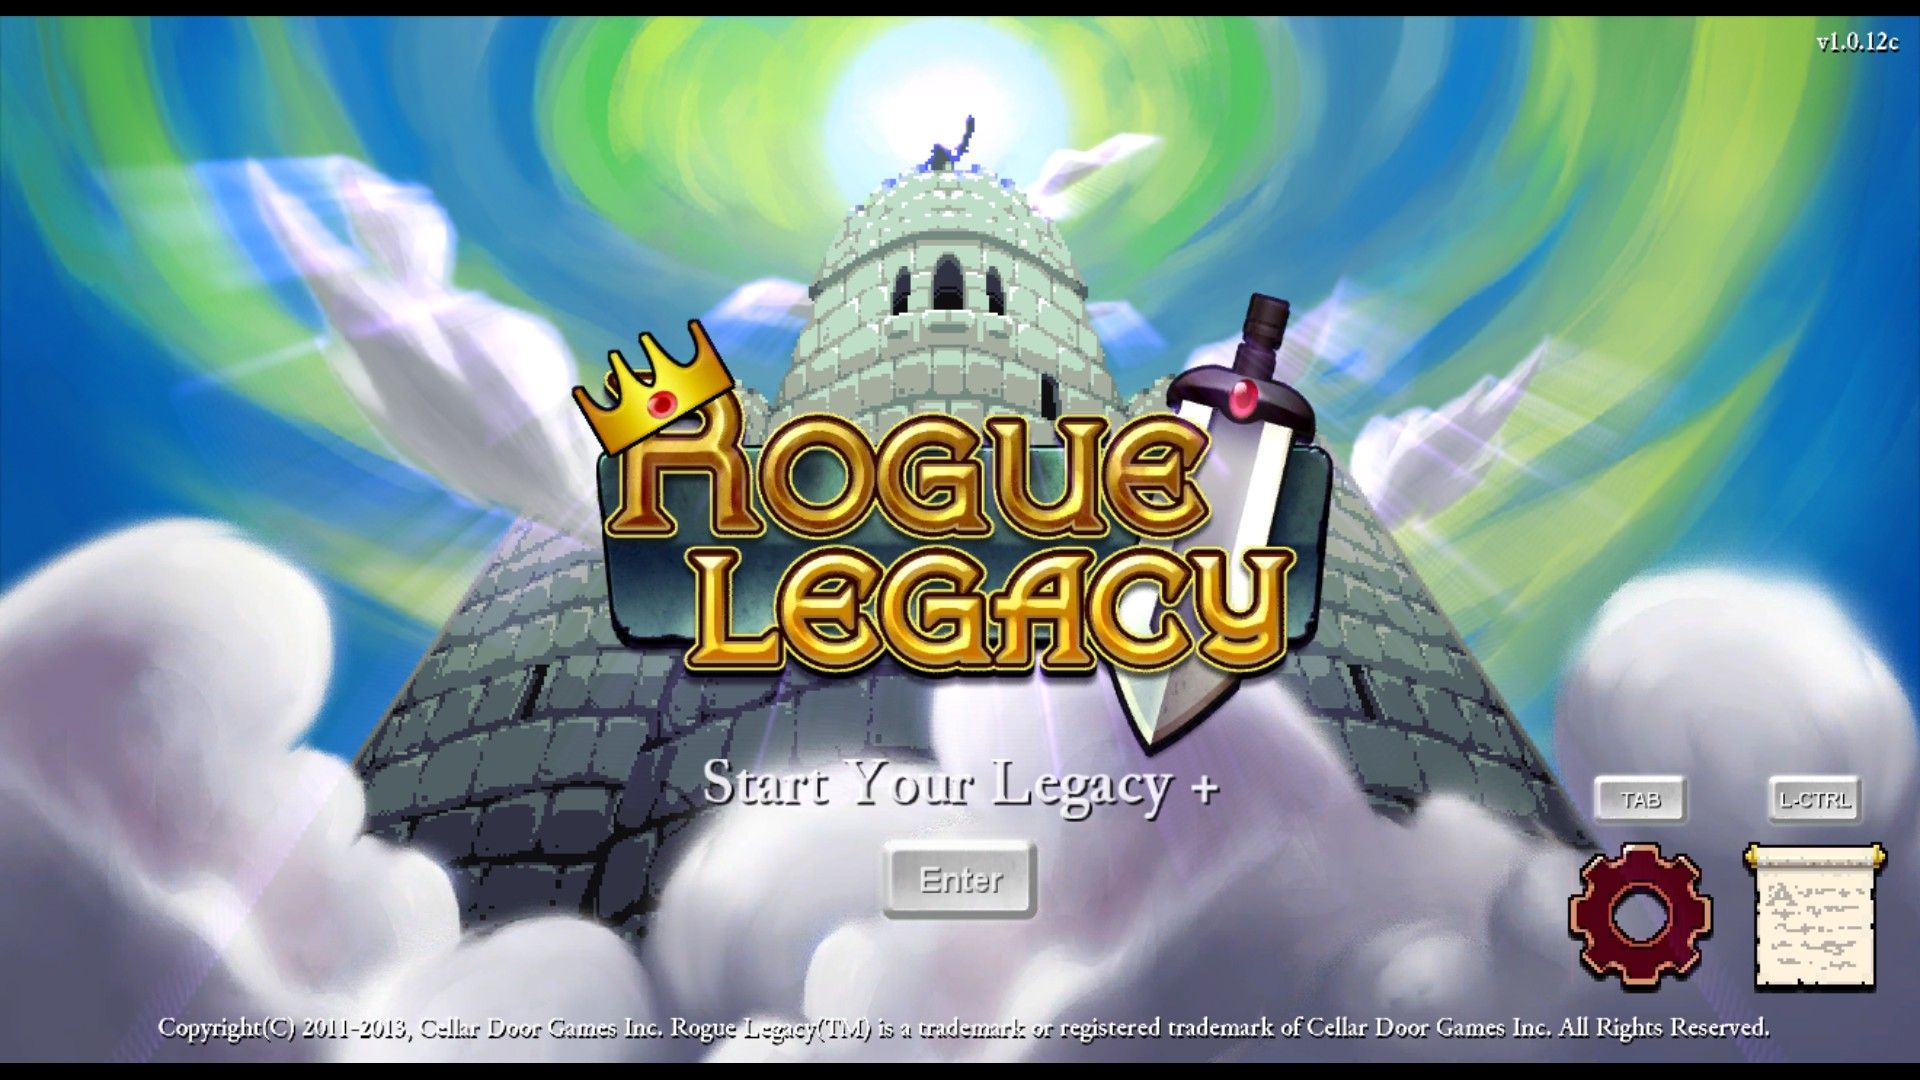 Rogue Legacy Game Review The best online game ever! This